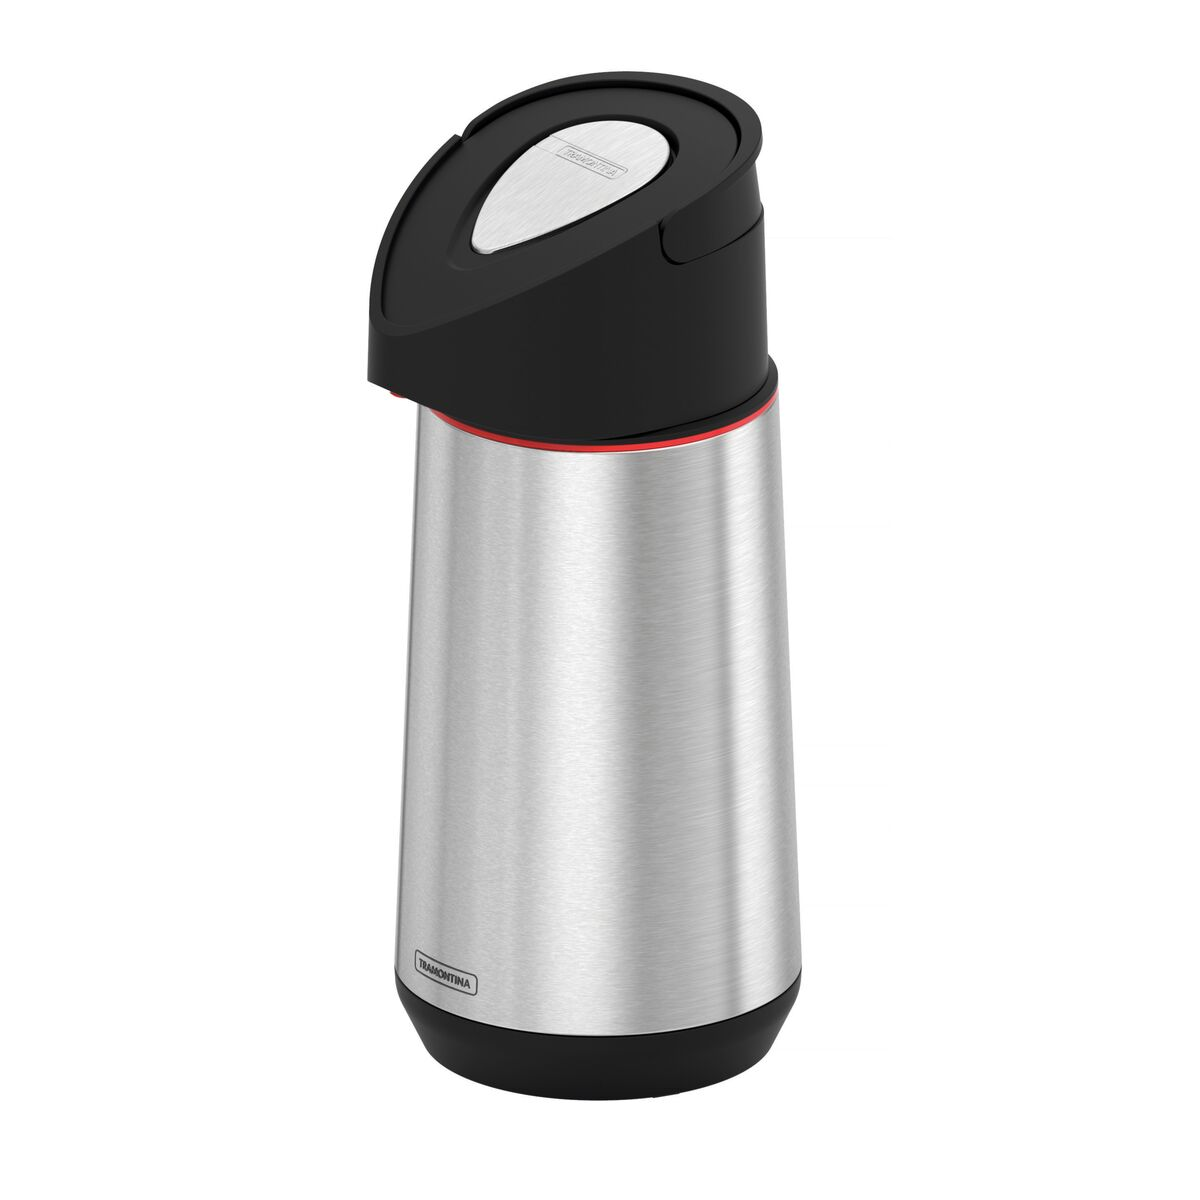 Tramontina 1.2 L Exata stainless steel thermal beverage dispenser with glass container